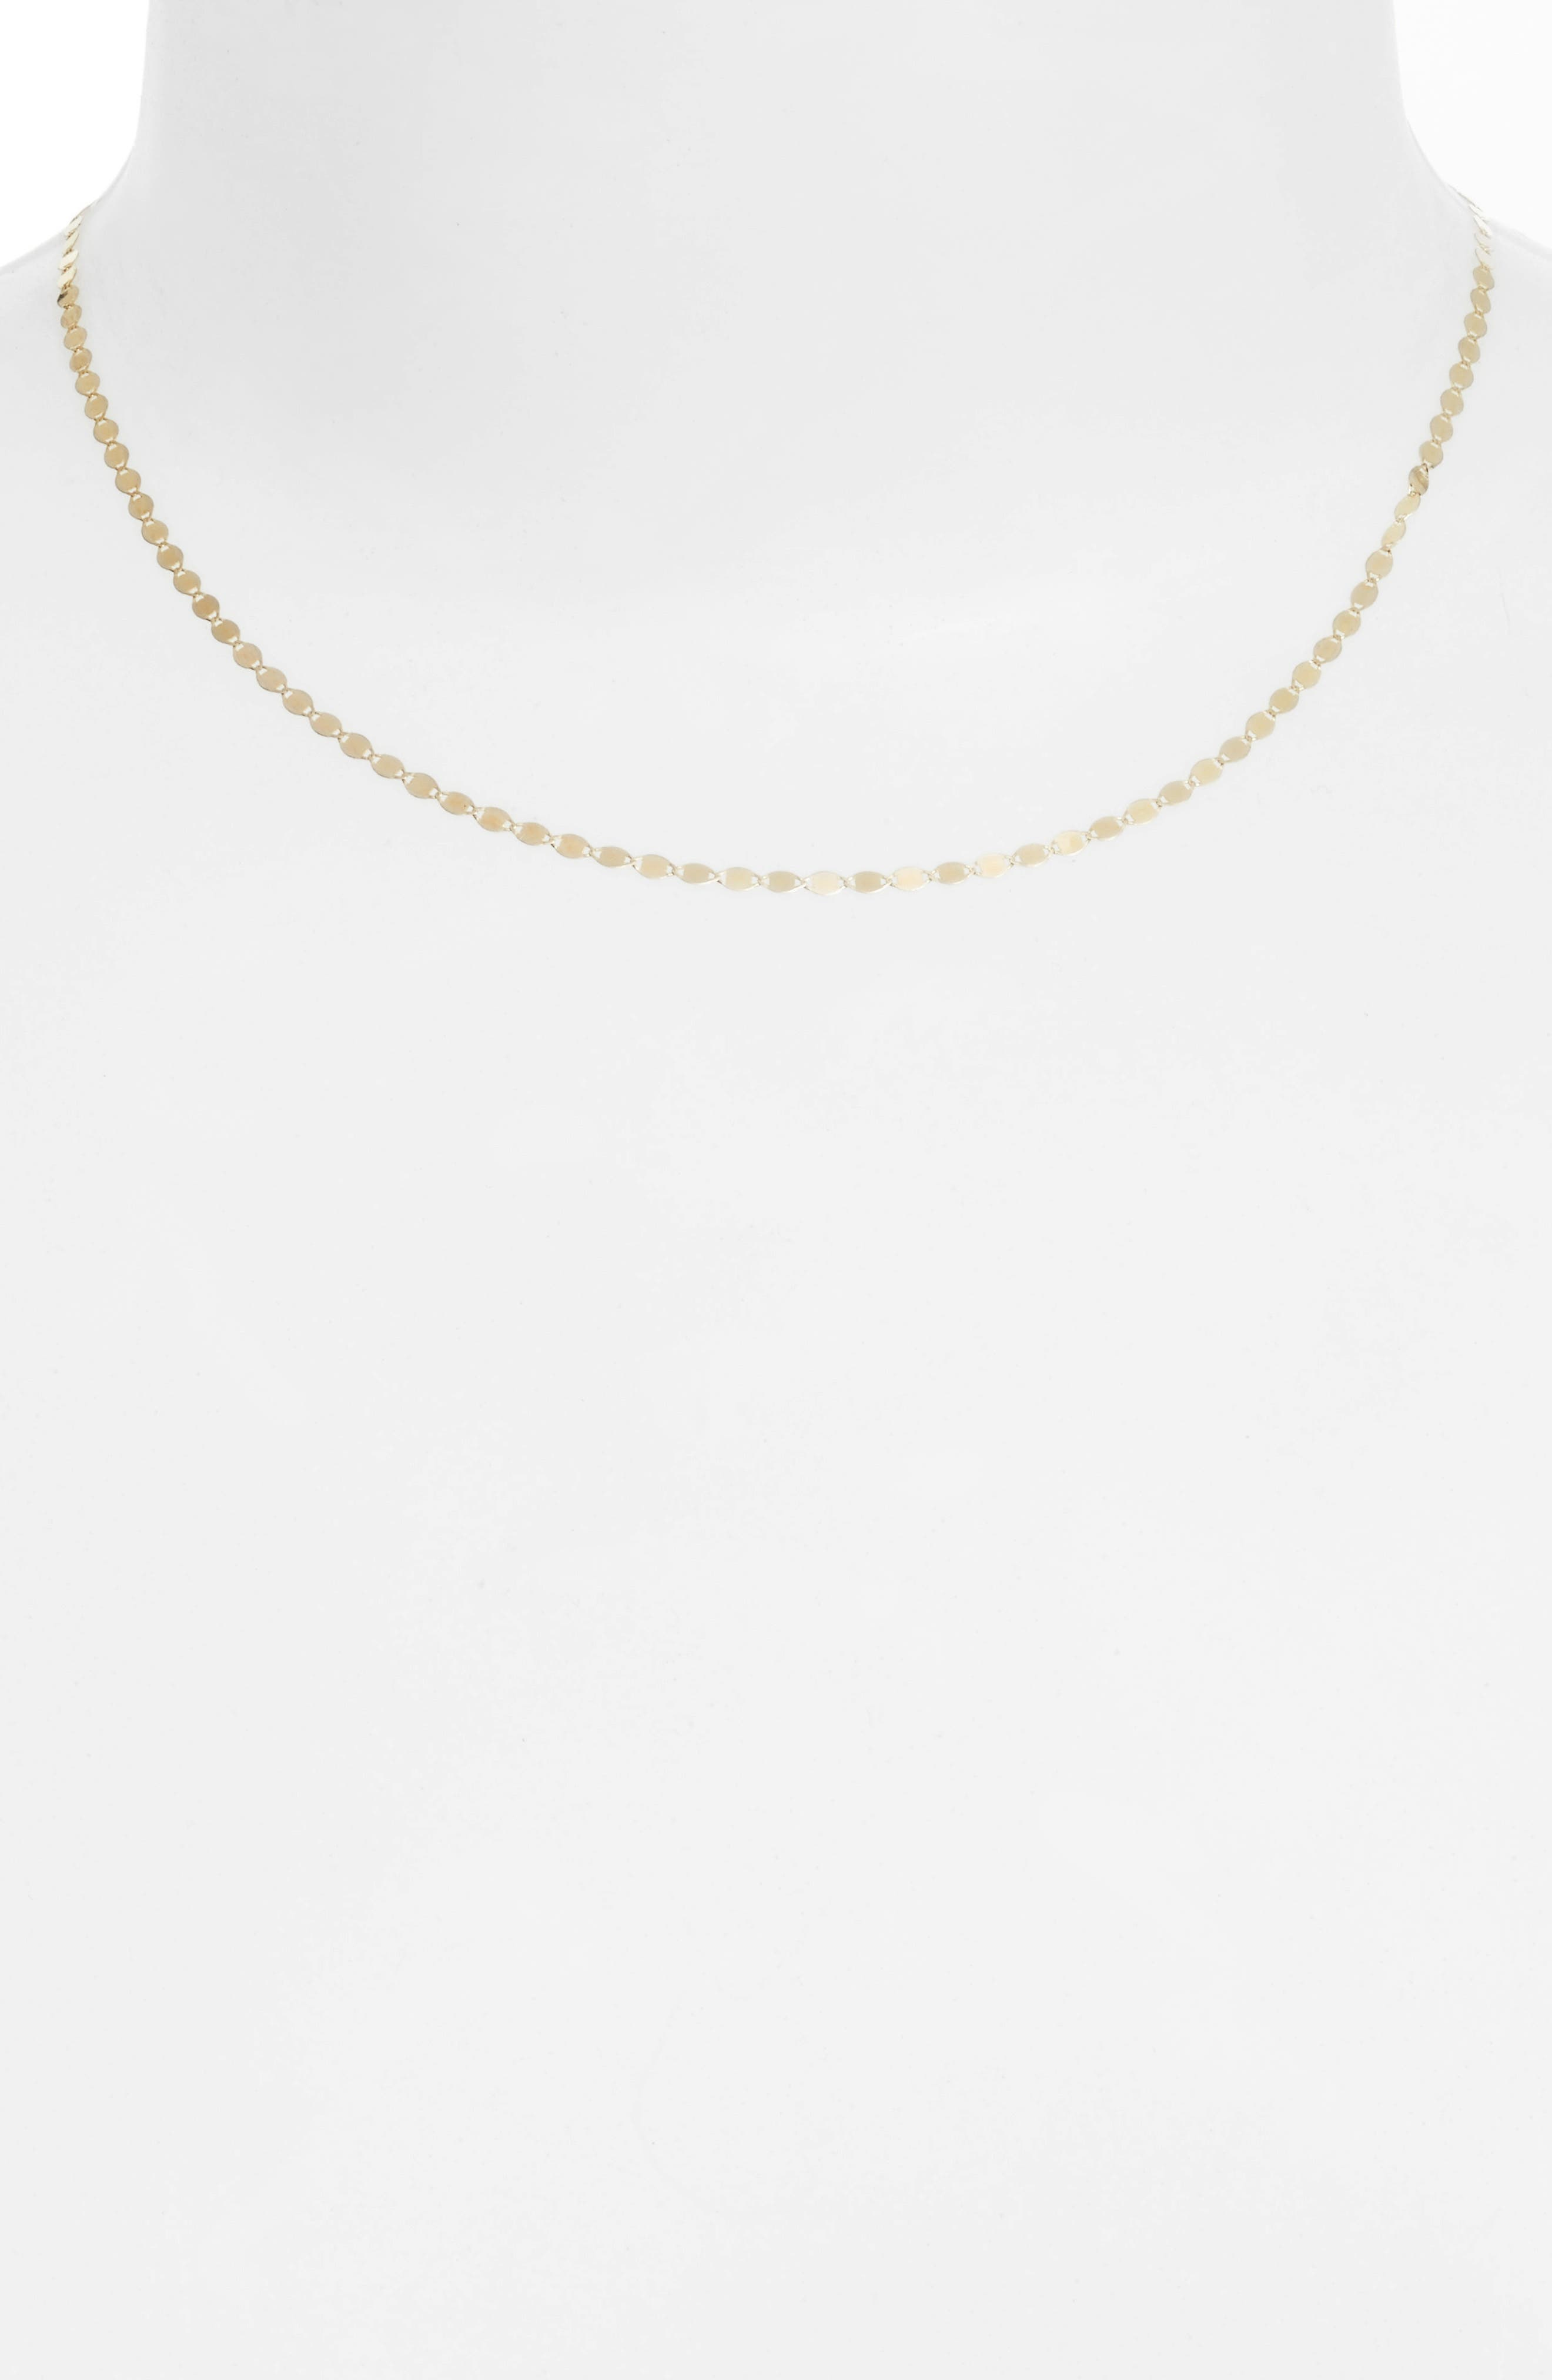 Petite Nude Chain Choker,                         Main,                         color, Yellow Gold